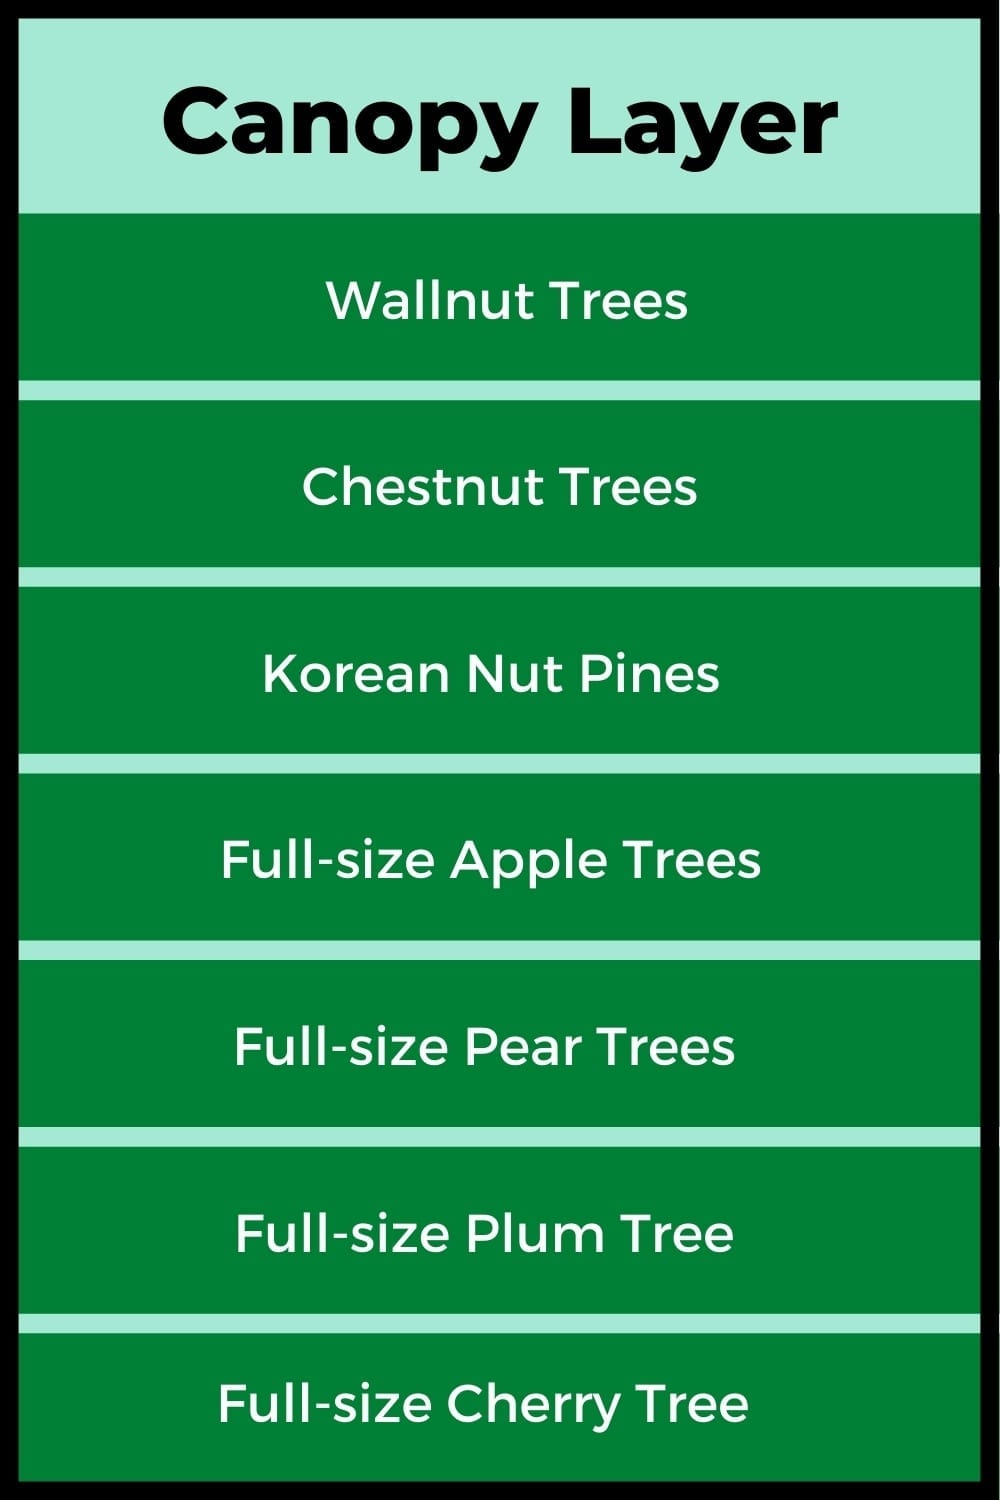 Plants Suitable for the Canopy Layer